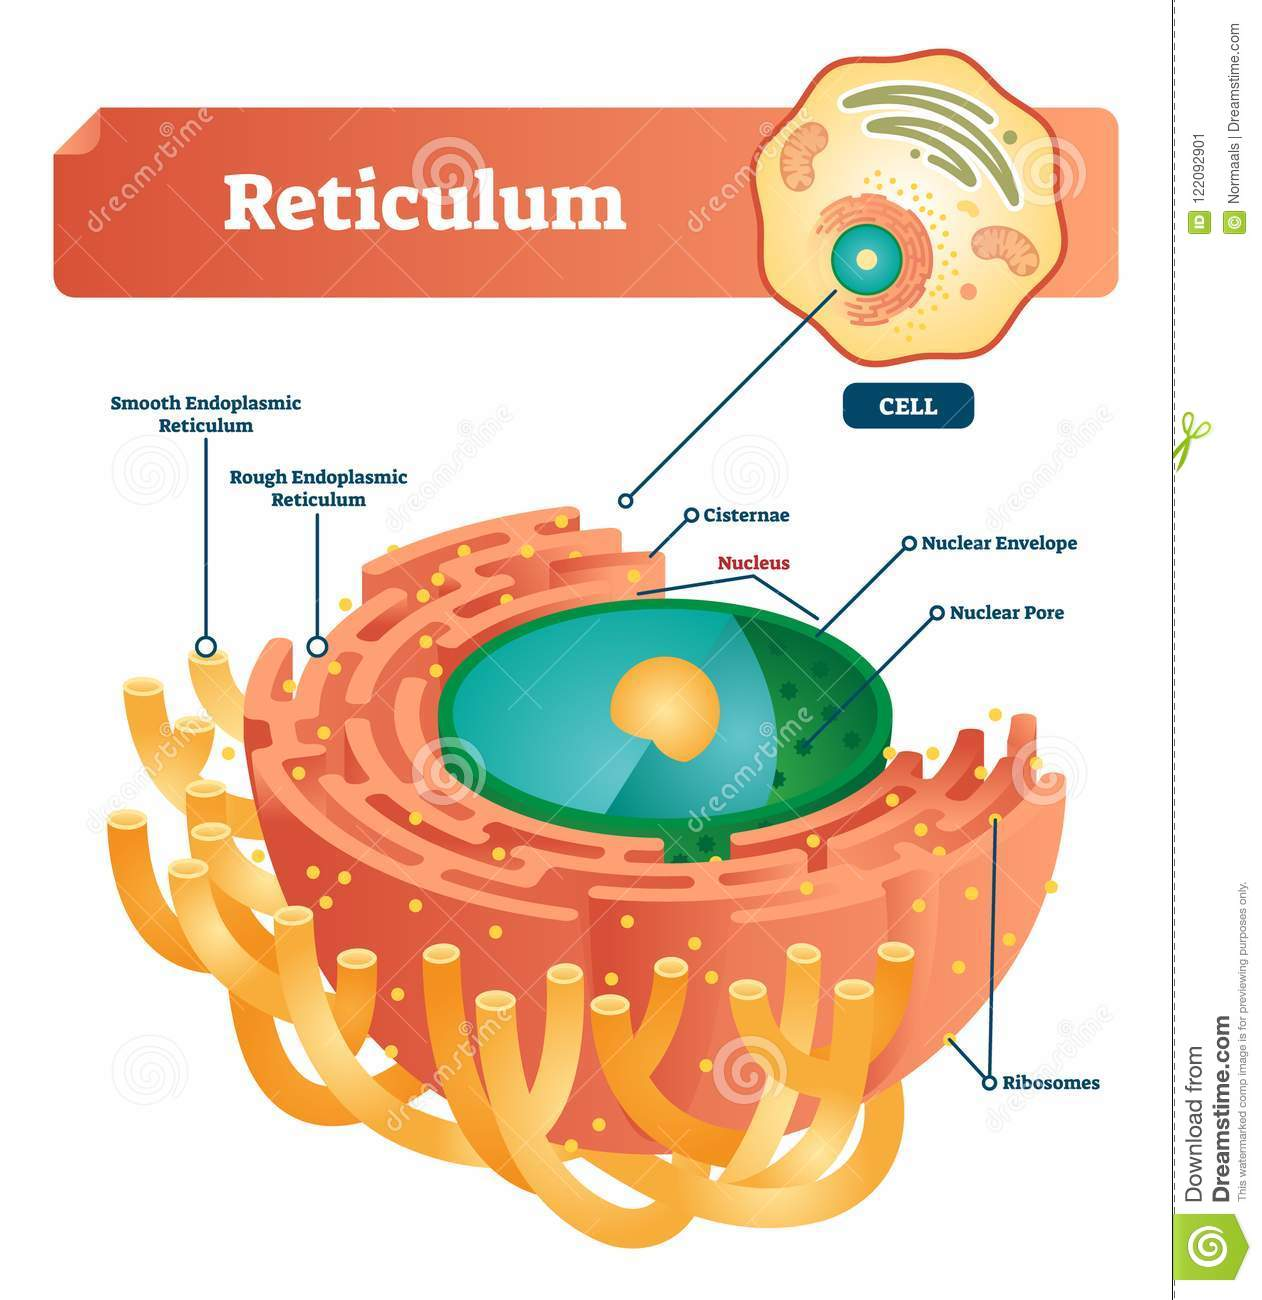 Smooth and rough endoplasmic reticulum diagram labeled wiring reticulum labeled vector illustration scheme anatomical diagram rh dreamstime com cell wall diagram mitochondria diagram with labels ccuart Gallery